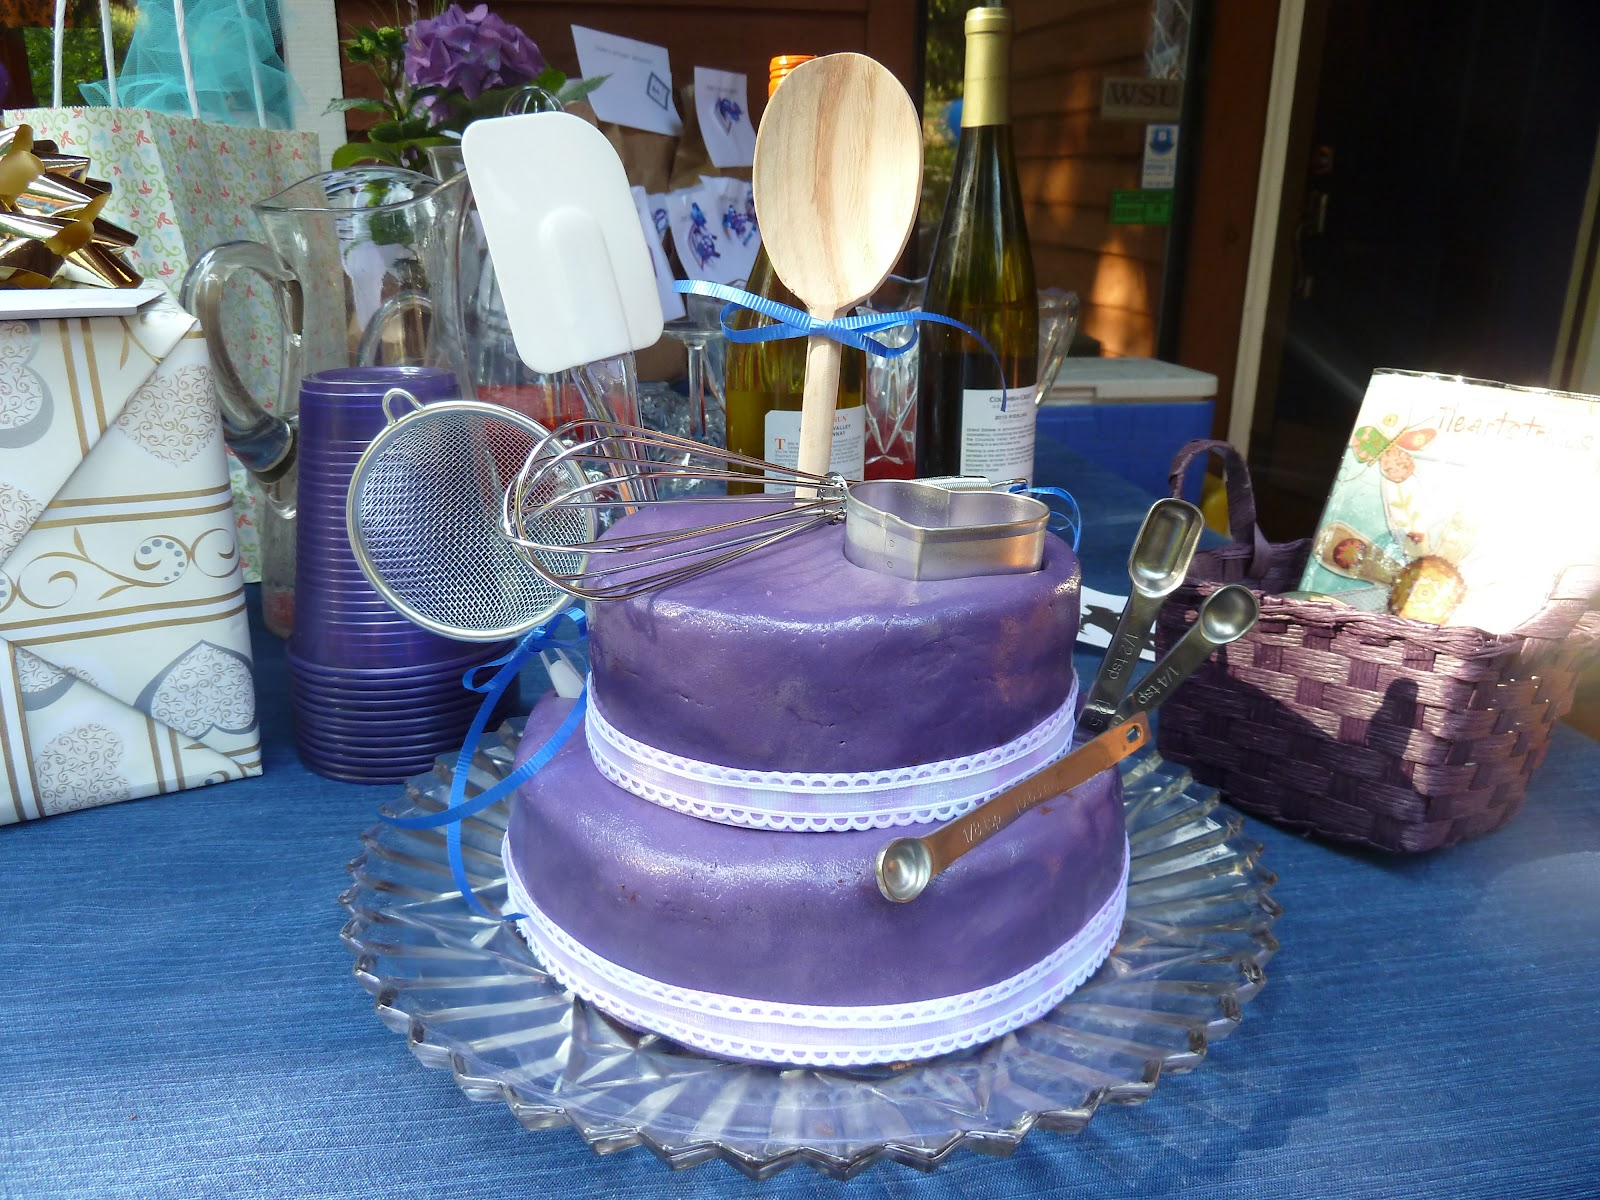 The more you know Bridal shower cake